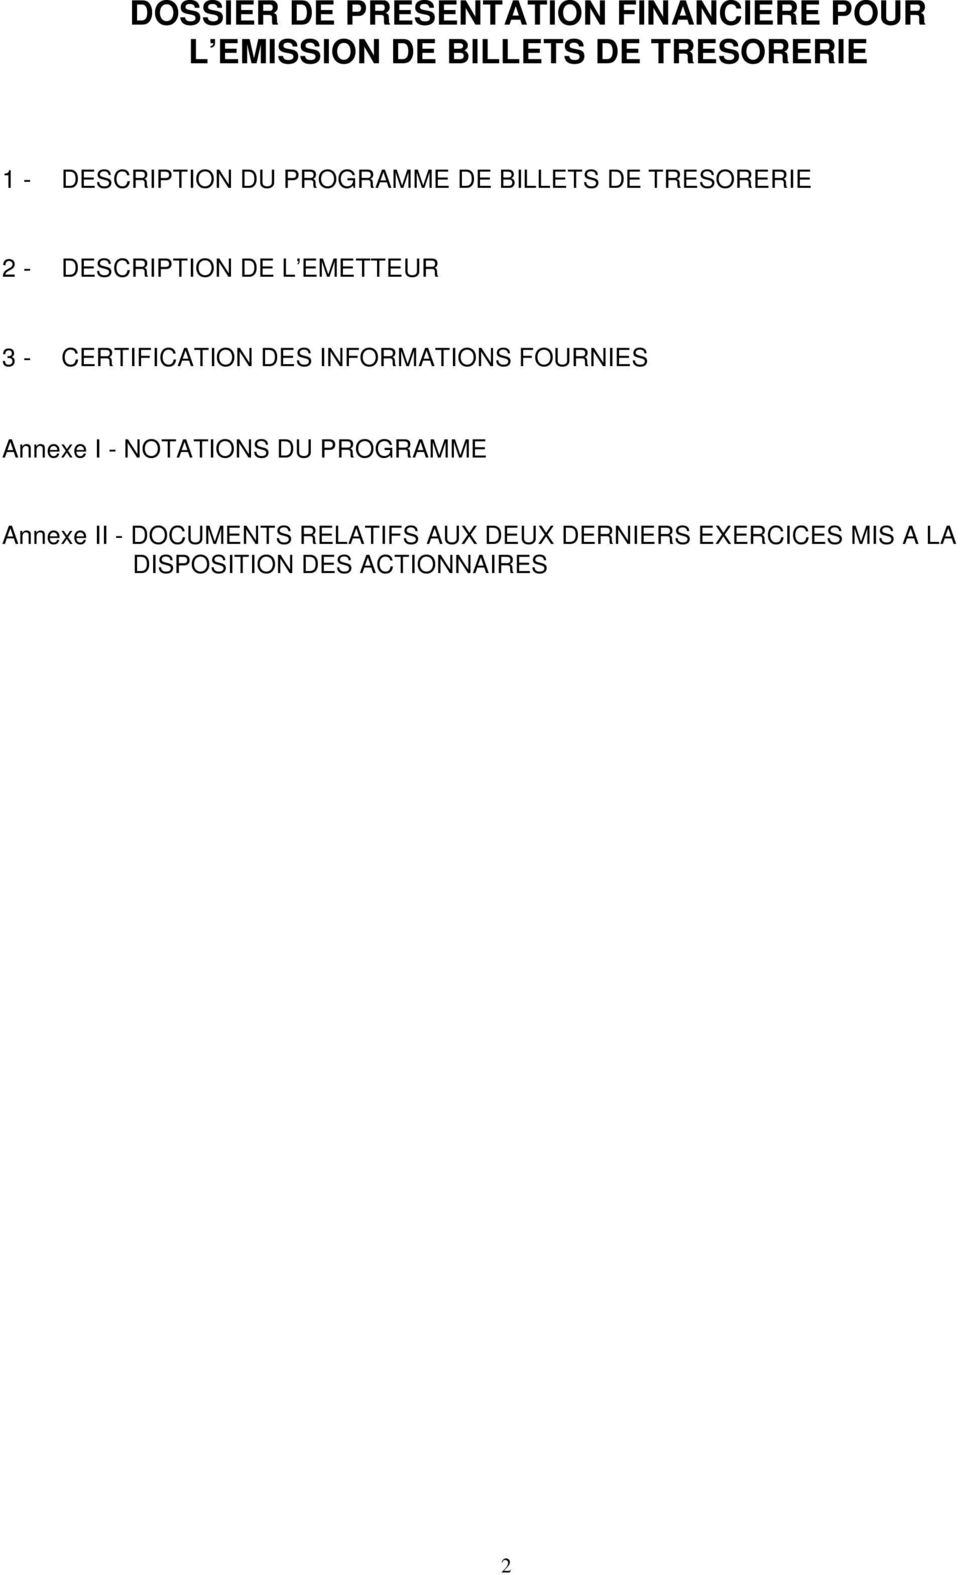 CERTIFICATION DES INFORMATIONS FOURNIES Annexe I - NOTATIONS DU PROGRAMME Annexe II